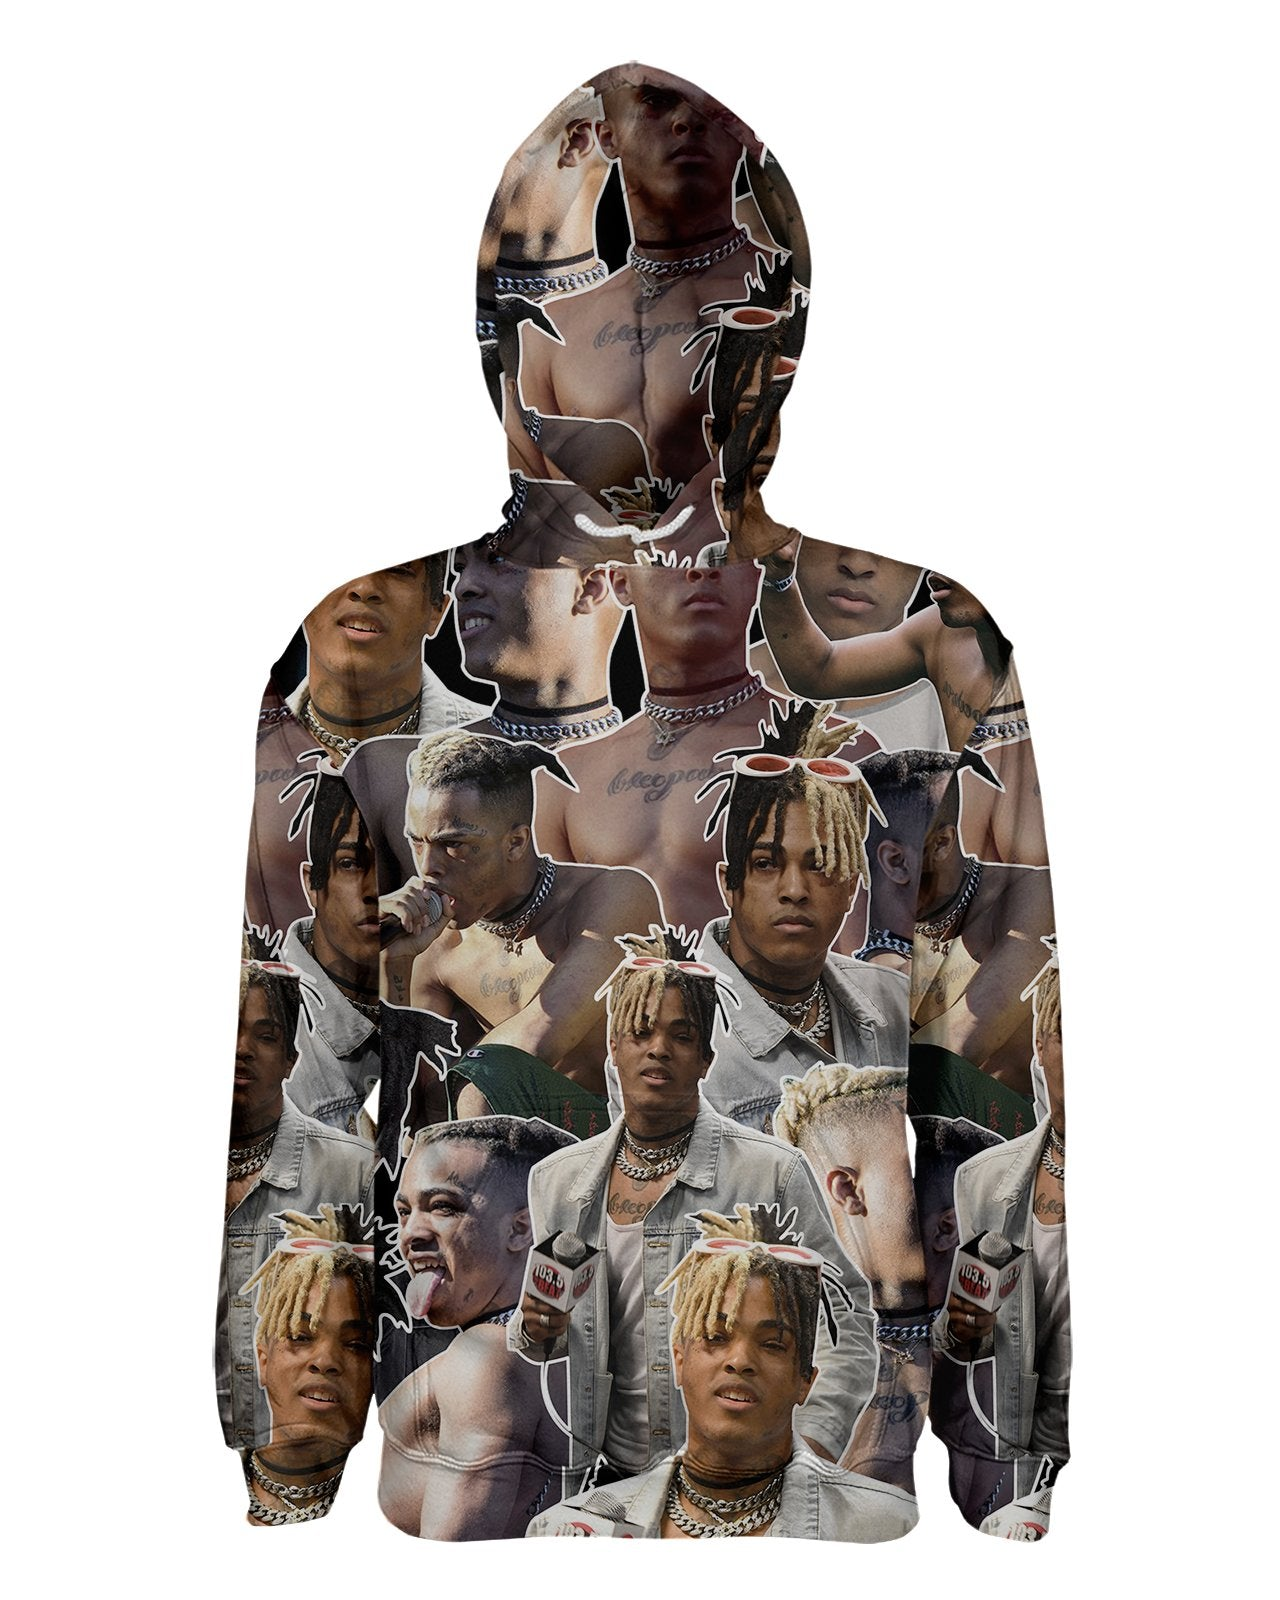 XXXTentacion printed all over in HD on premium fabric. Handmade in California.